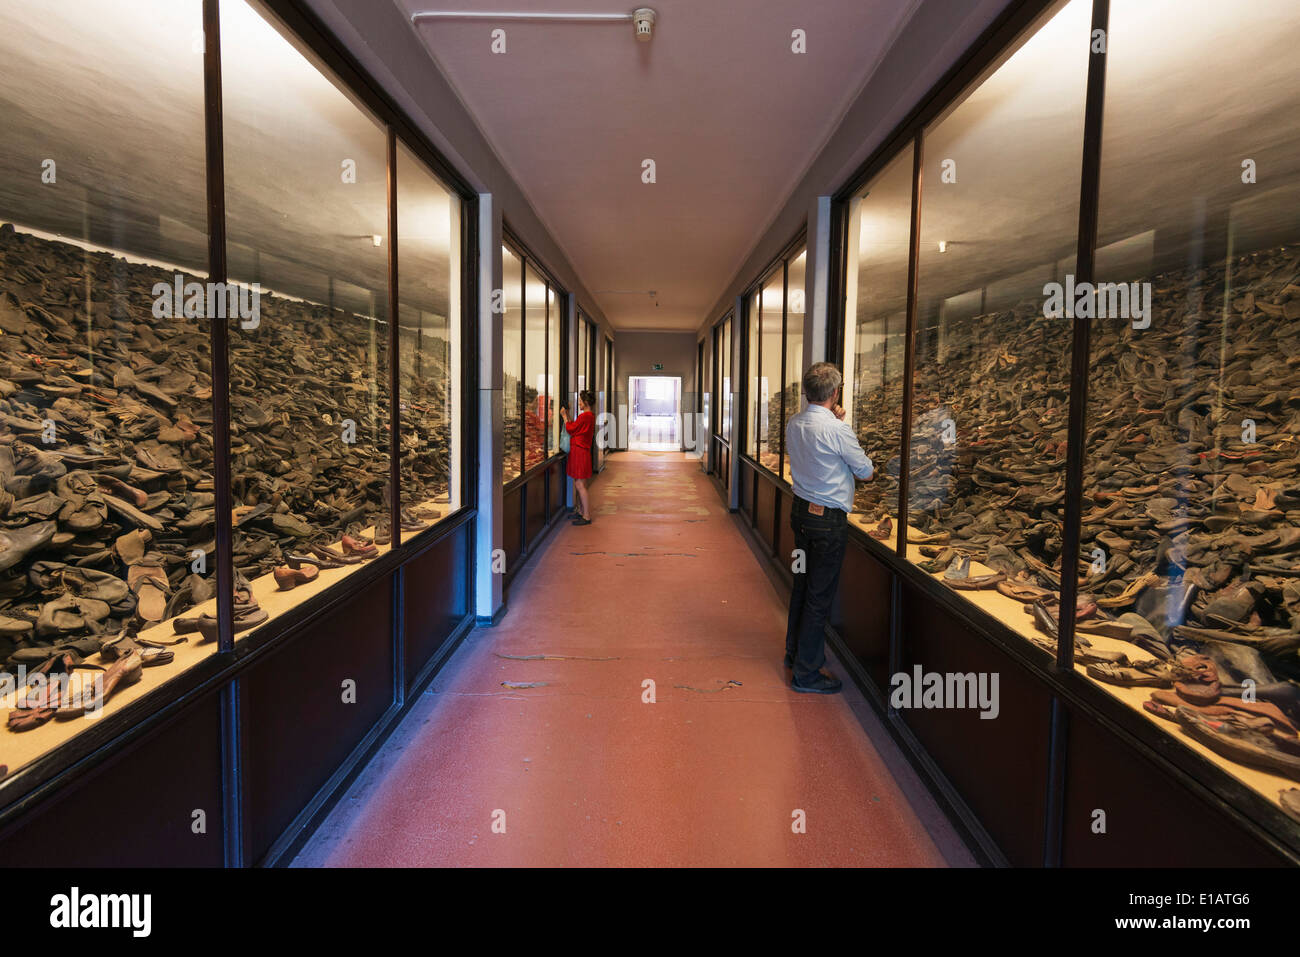 Europe, Poland, Silesia, Oswiecim, exhibition at Auschwitz-Birkenau, German Nazi Concentration Camp and Extermination Camp - Stock Image